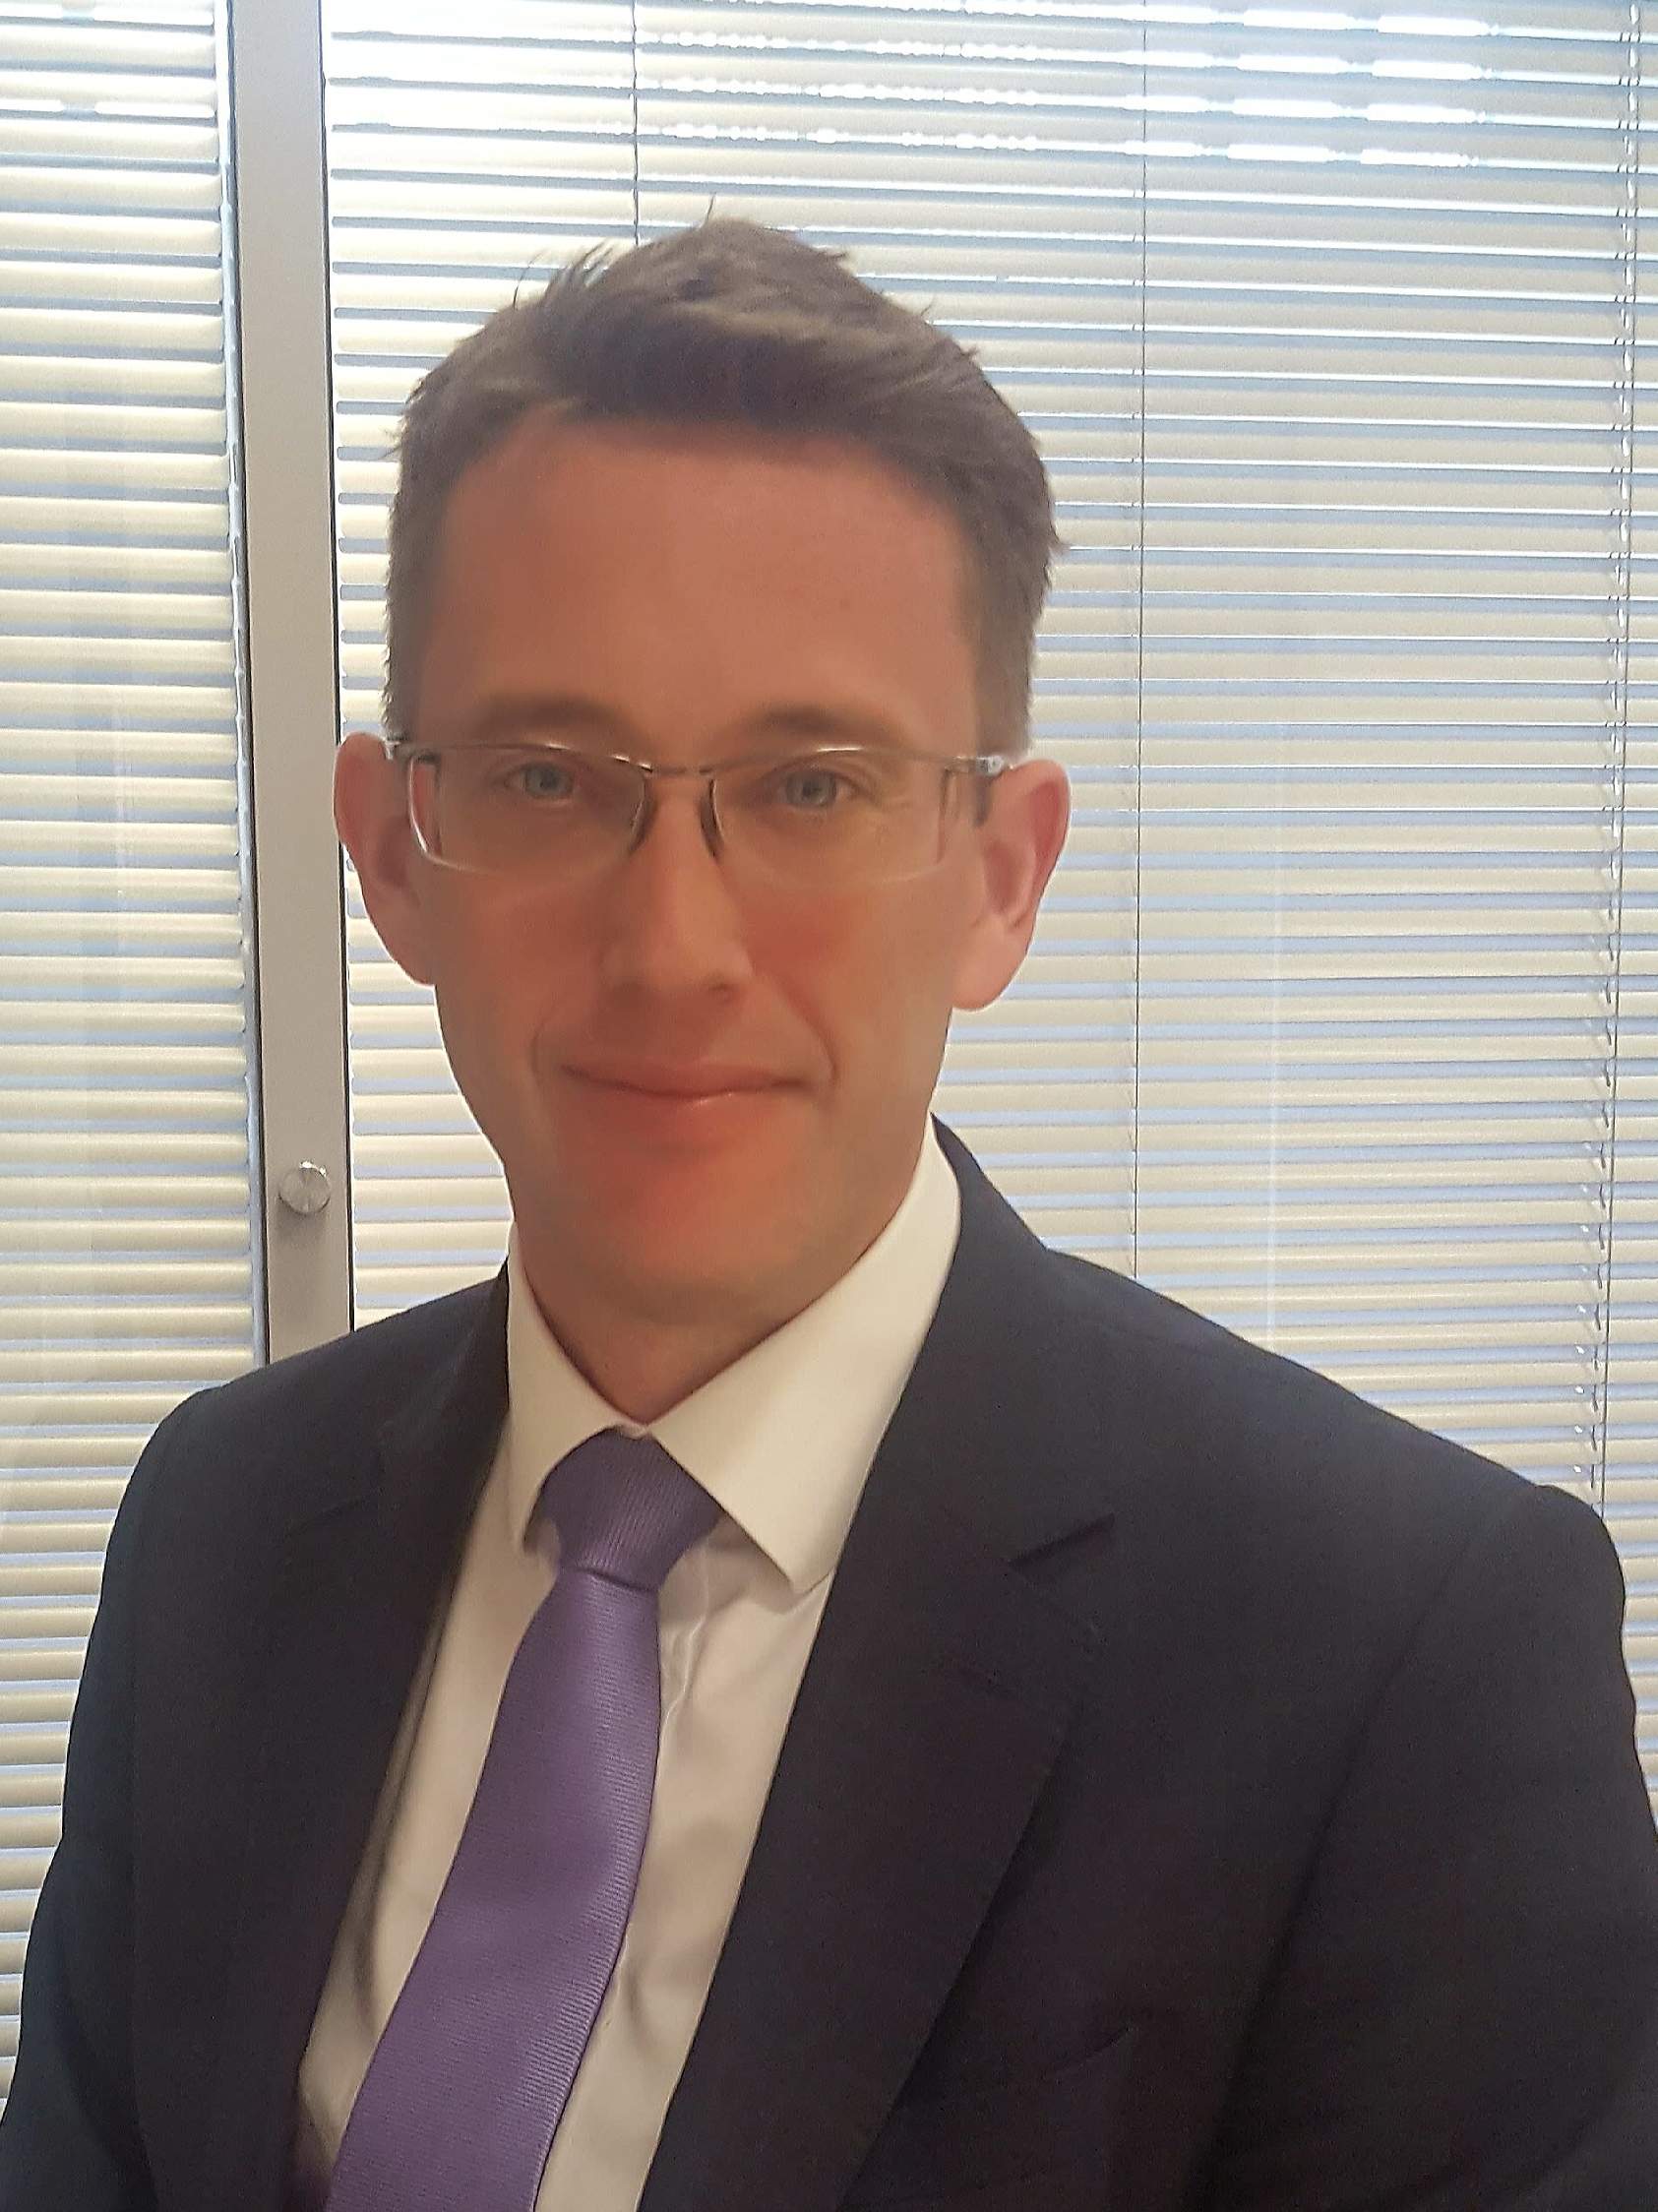 WMCA appoints finance director to top tier team